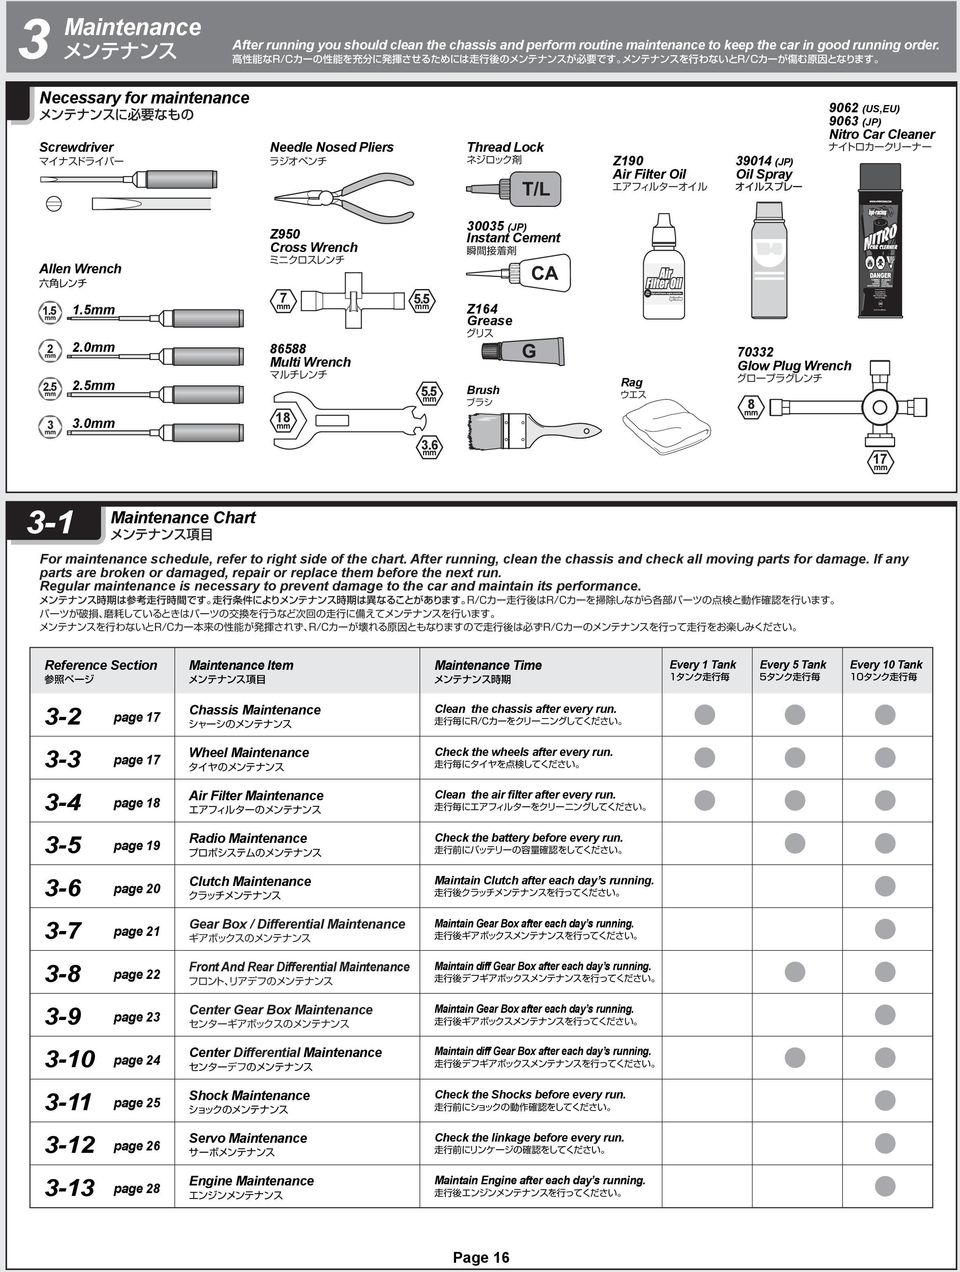 5.0.5 3.0 Z950 Cross Wrench 7 8588 Multi Wrench 8 5.5 5.5 3. 30035 (JP) Instant Cement Z Grease Brush Rag 7033 Glow Plug Wrench 8 7 3- Maintenance Chart For maintenance schedule, refer to right side of the chart.